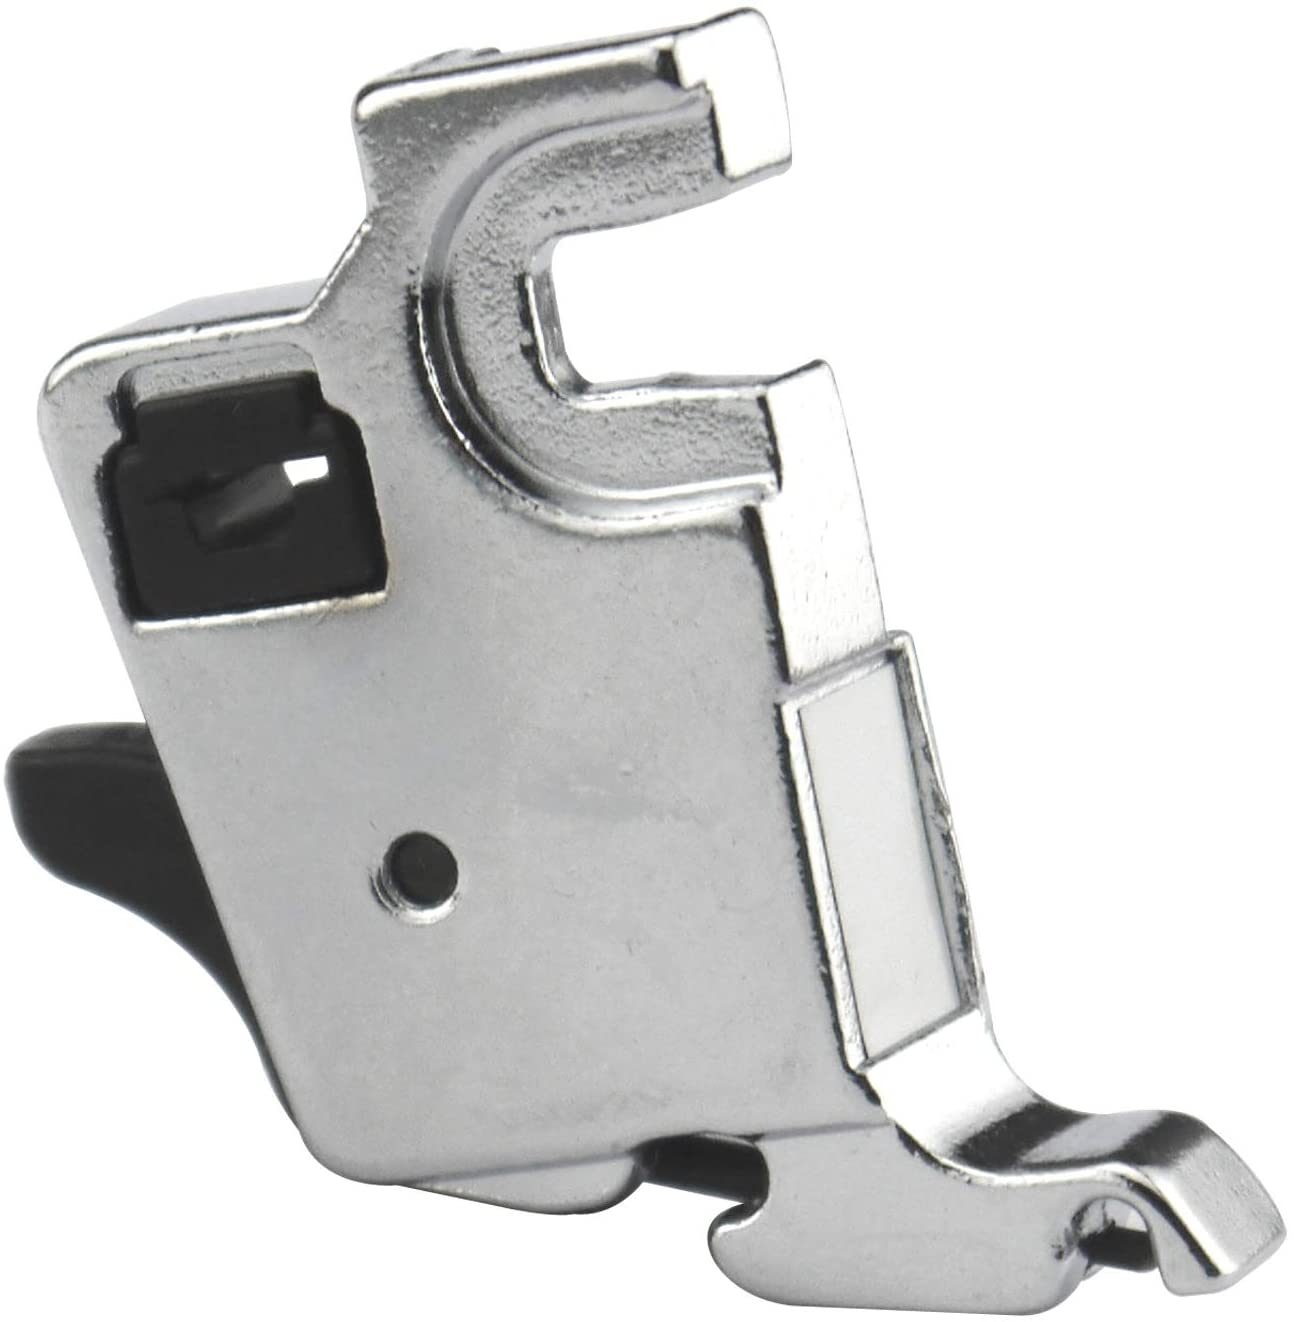 DREAMSTITCH XC2242051 Presser Foot Holder High Shank Ankle for Brother,Babylock Sewing Machine #XC2242151-801H